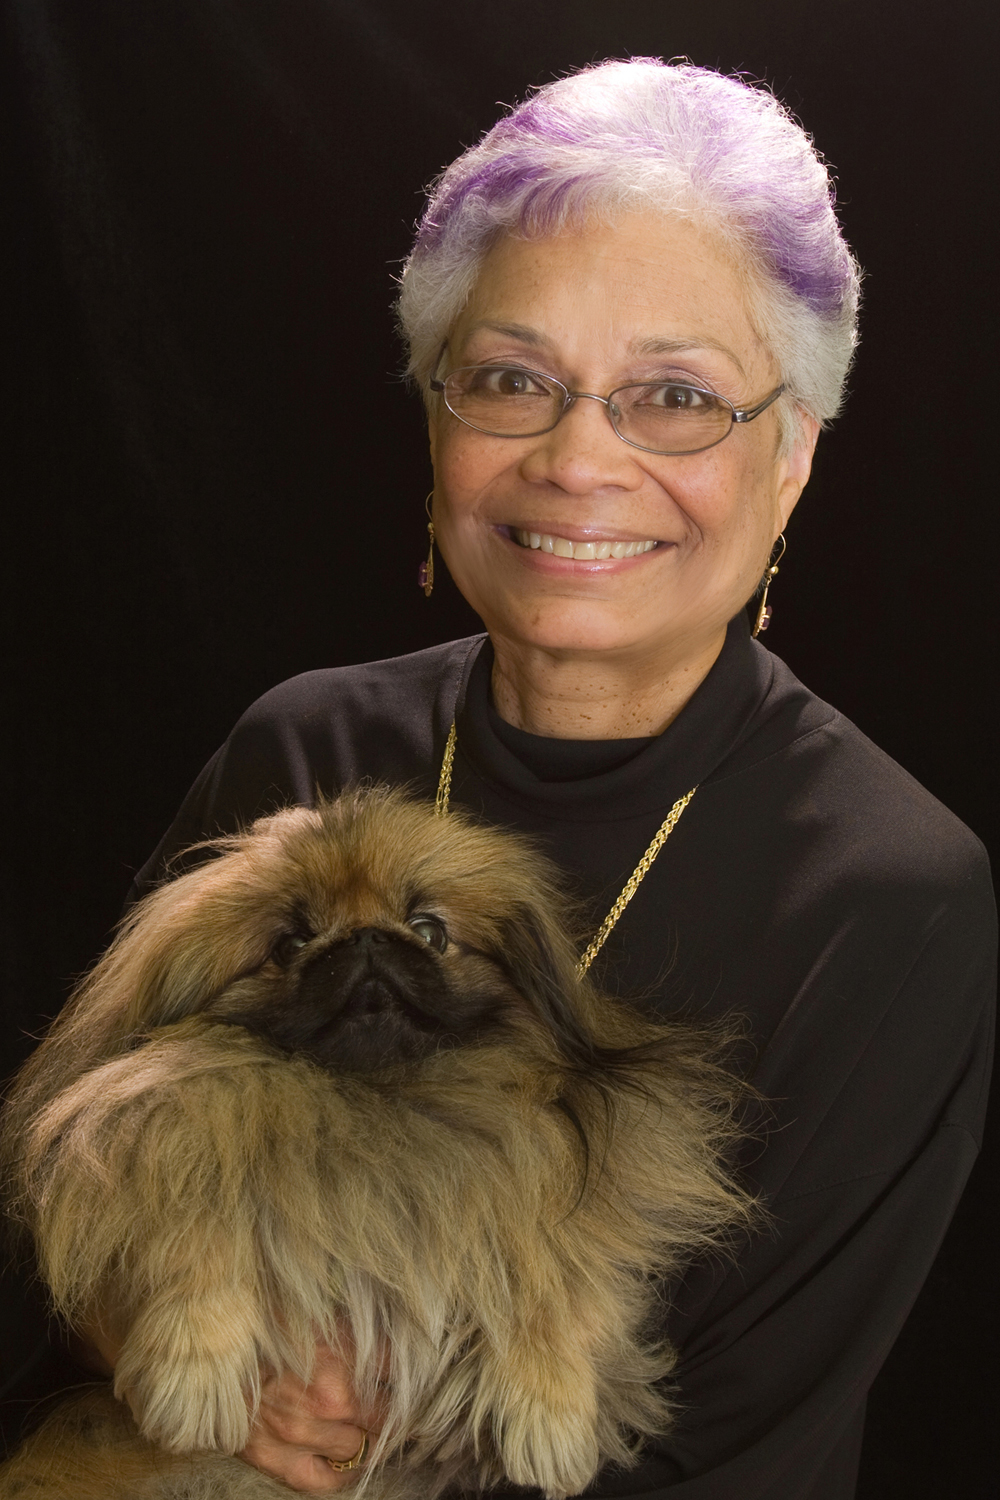 Sharon E. Sutton, with her Pekingese dog, Shoshana.